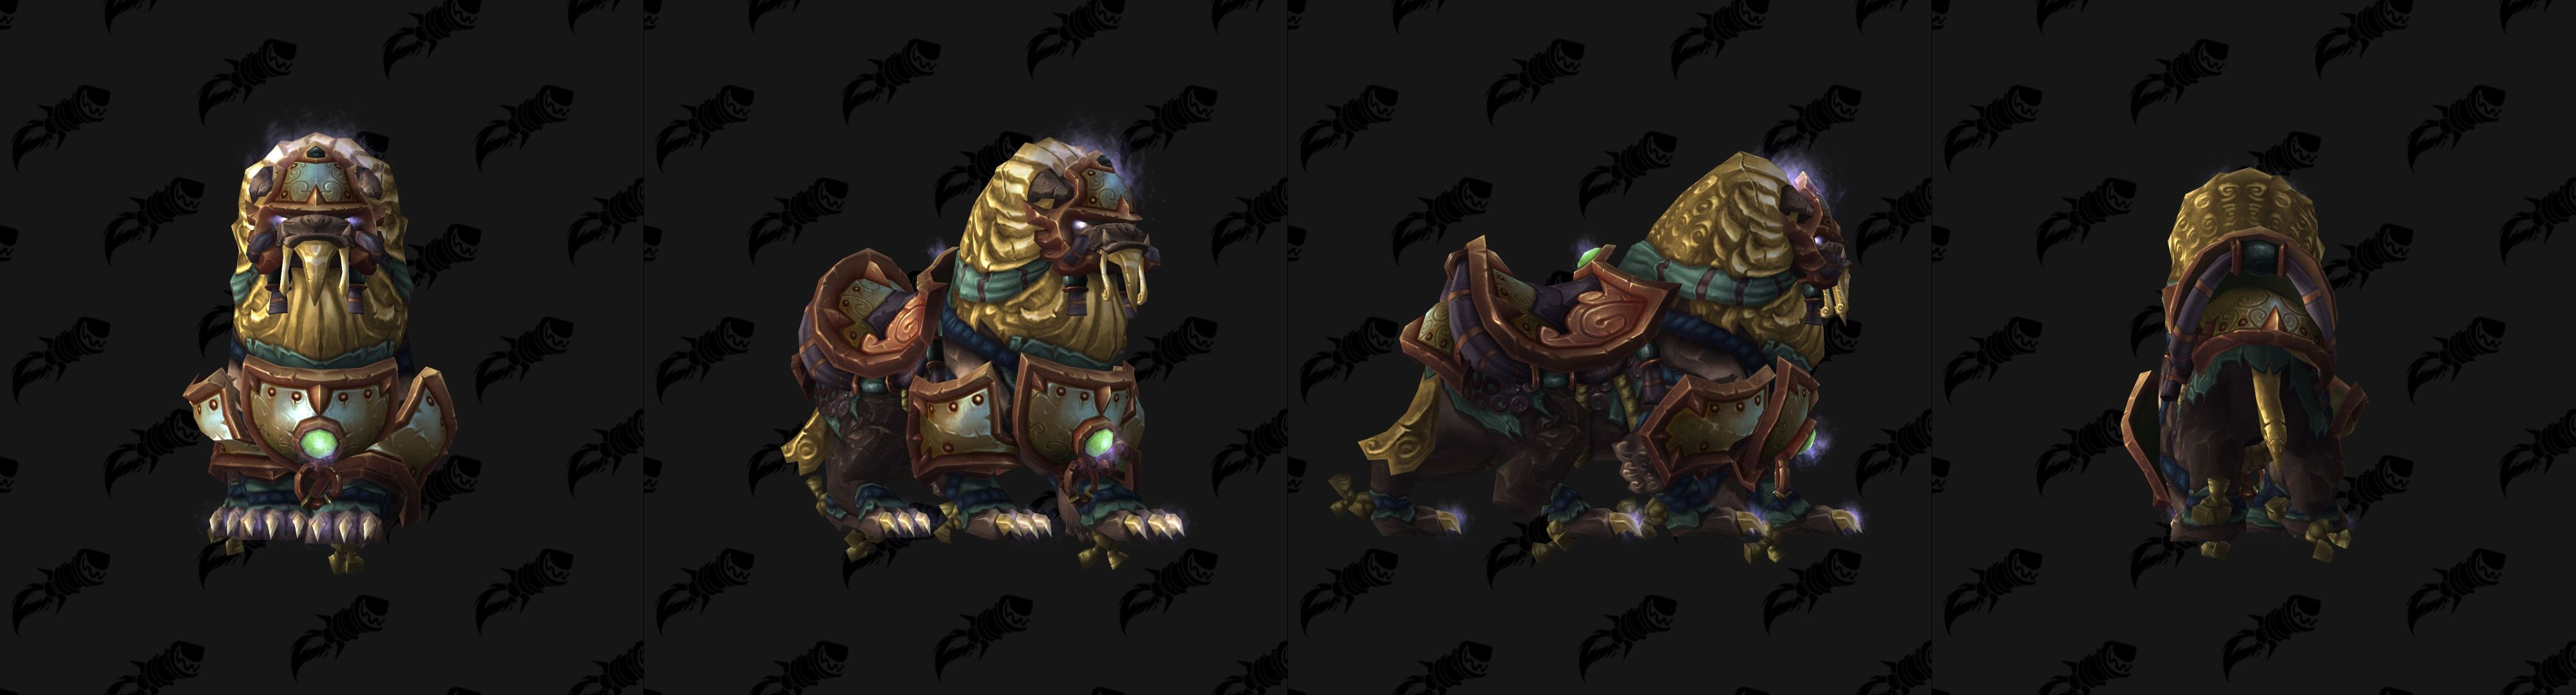 WoW Island Expeditions Mogu Mount